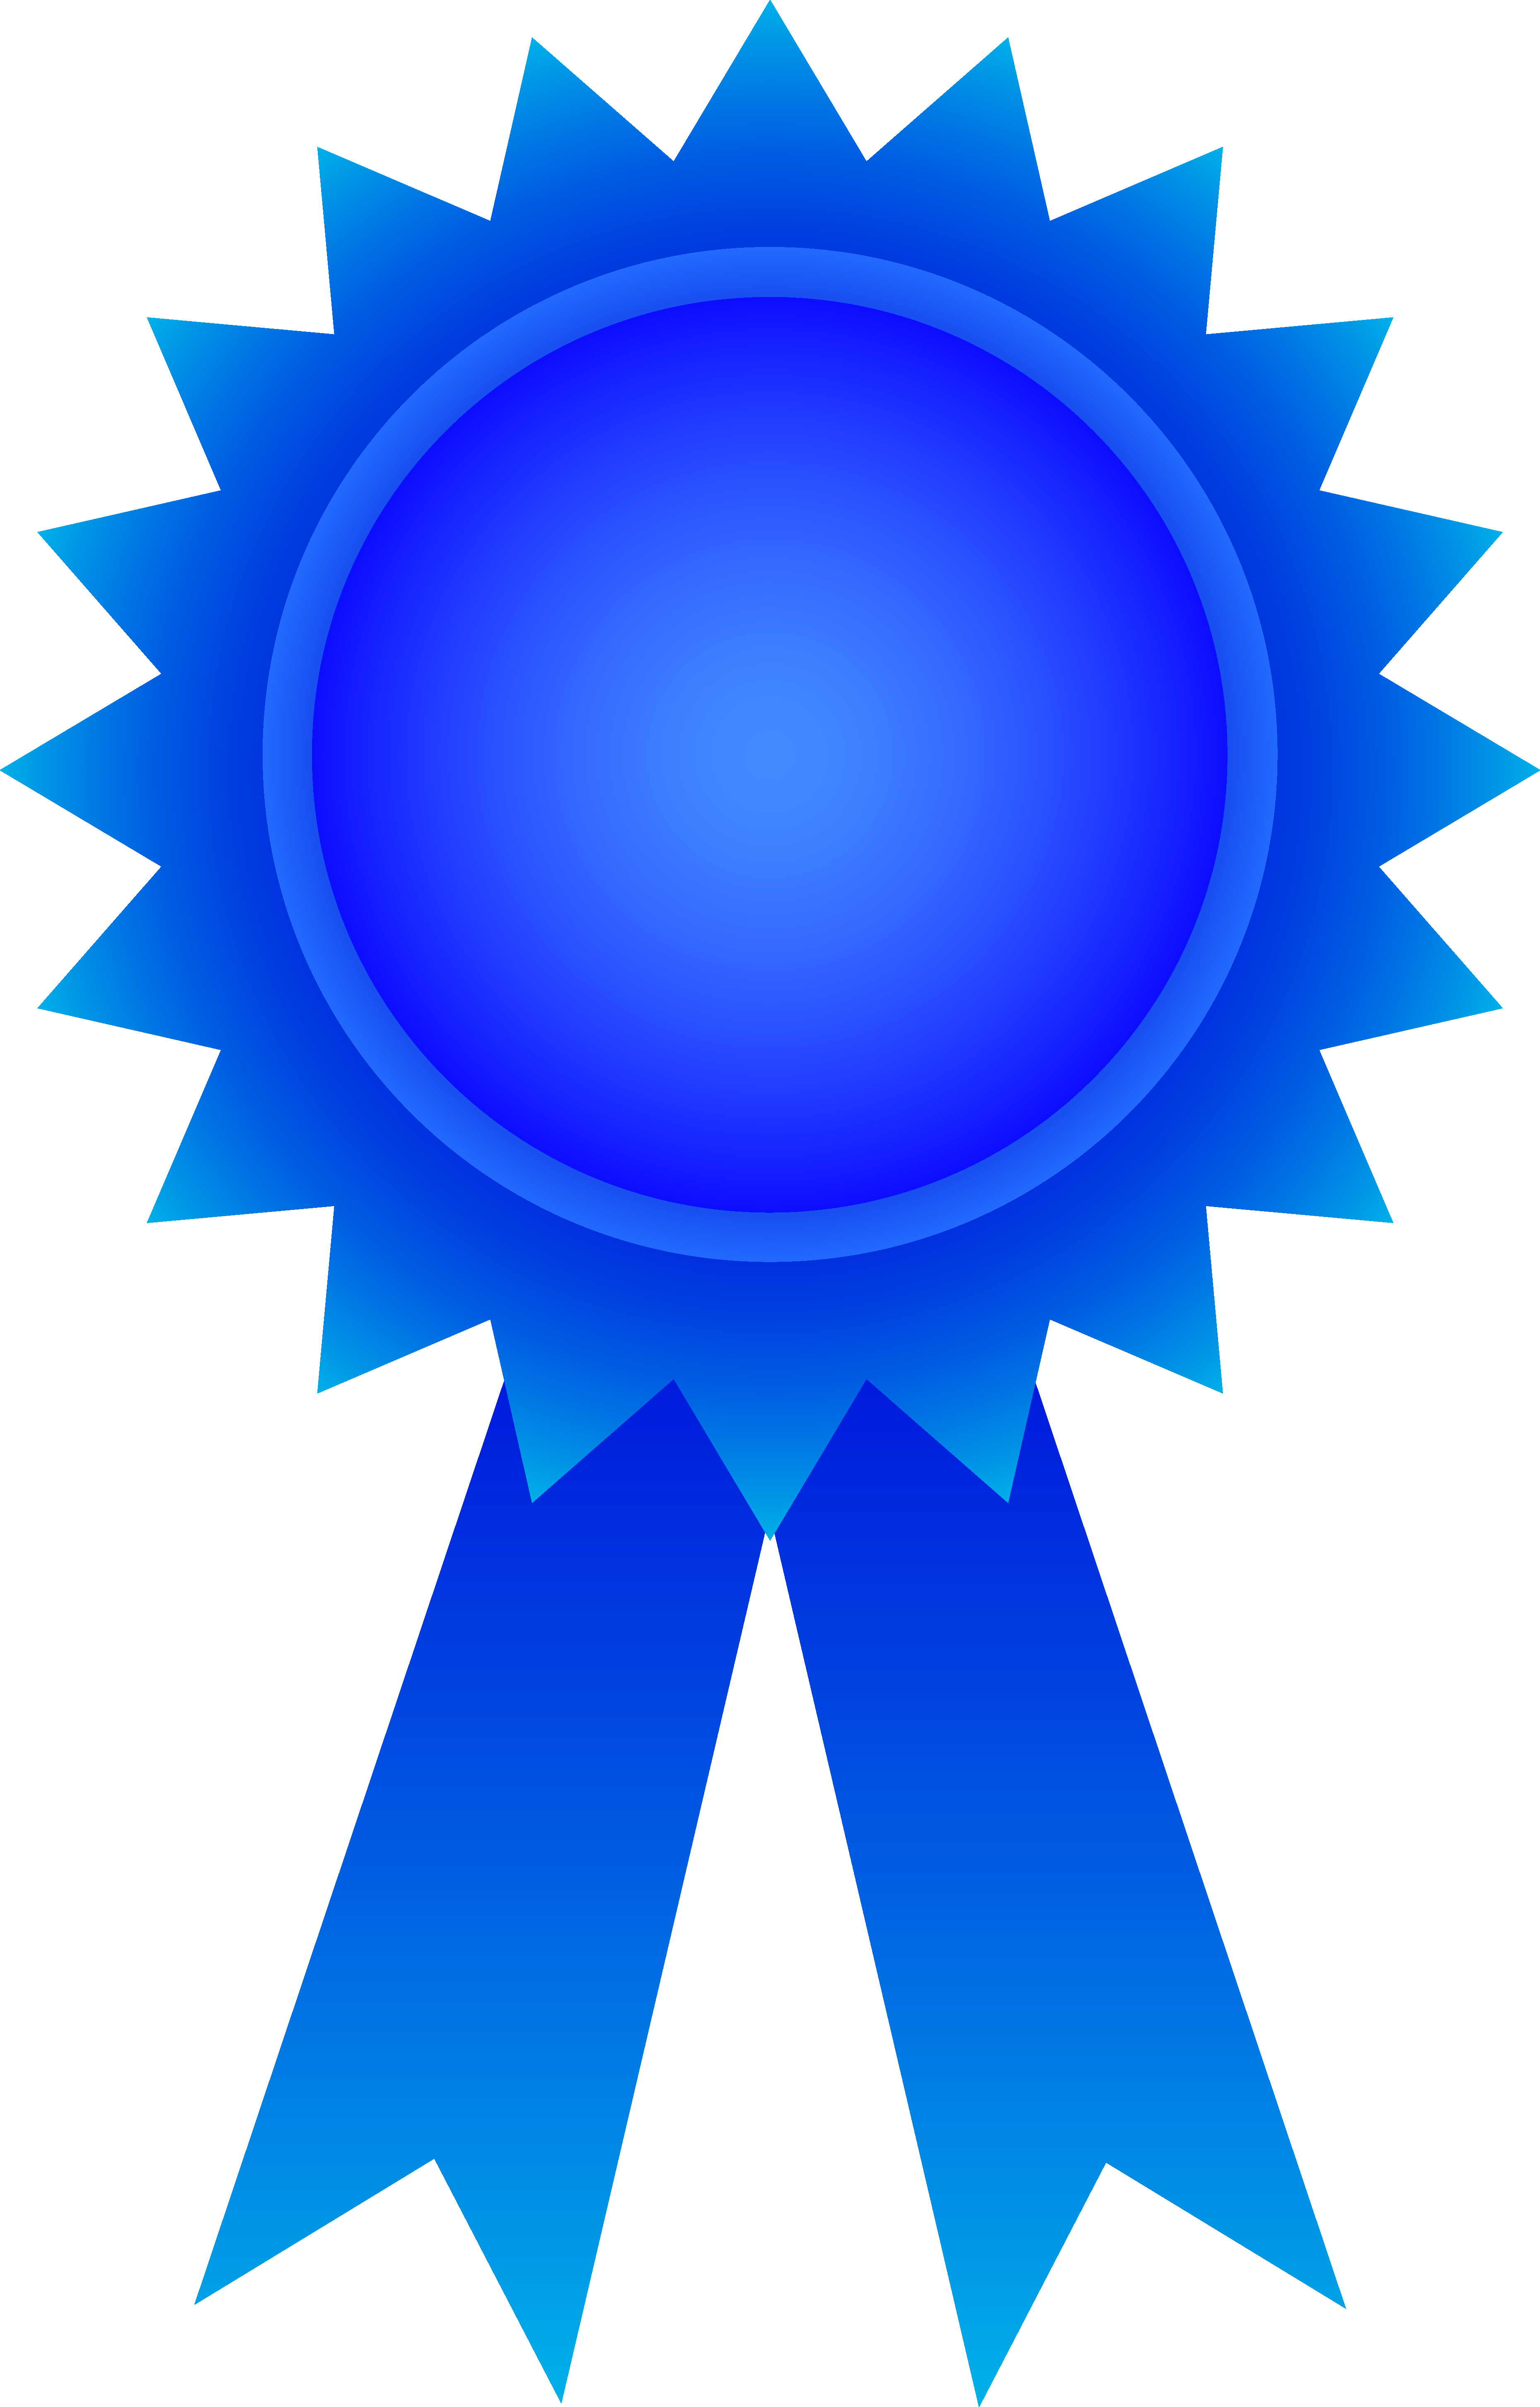 Ribbon awards clipart.